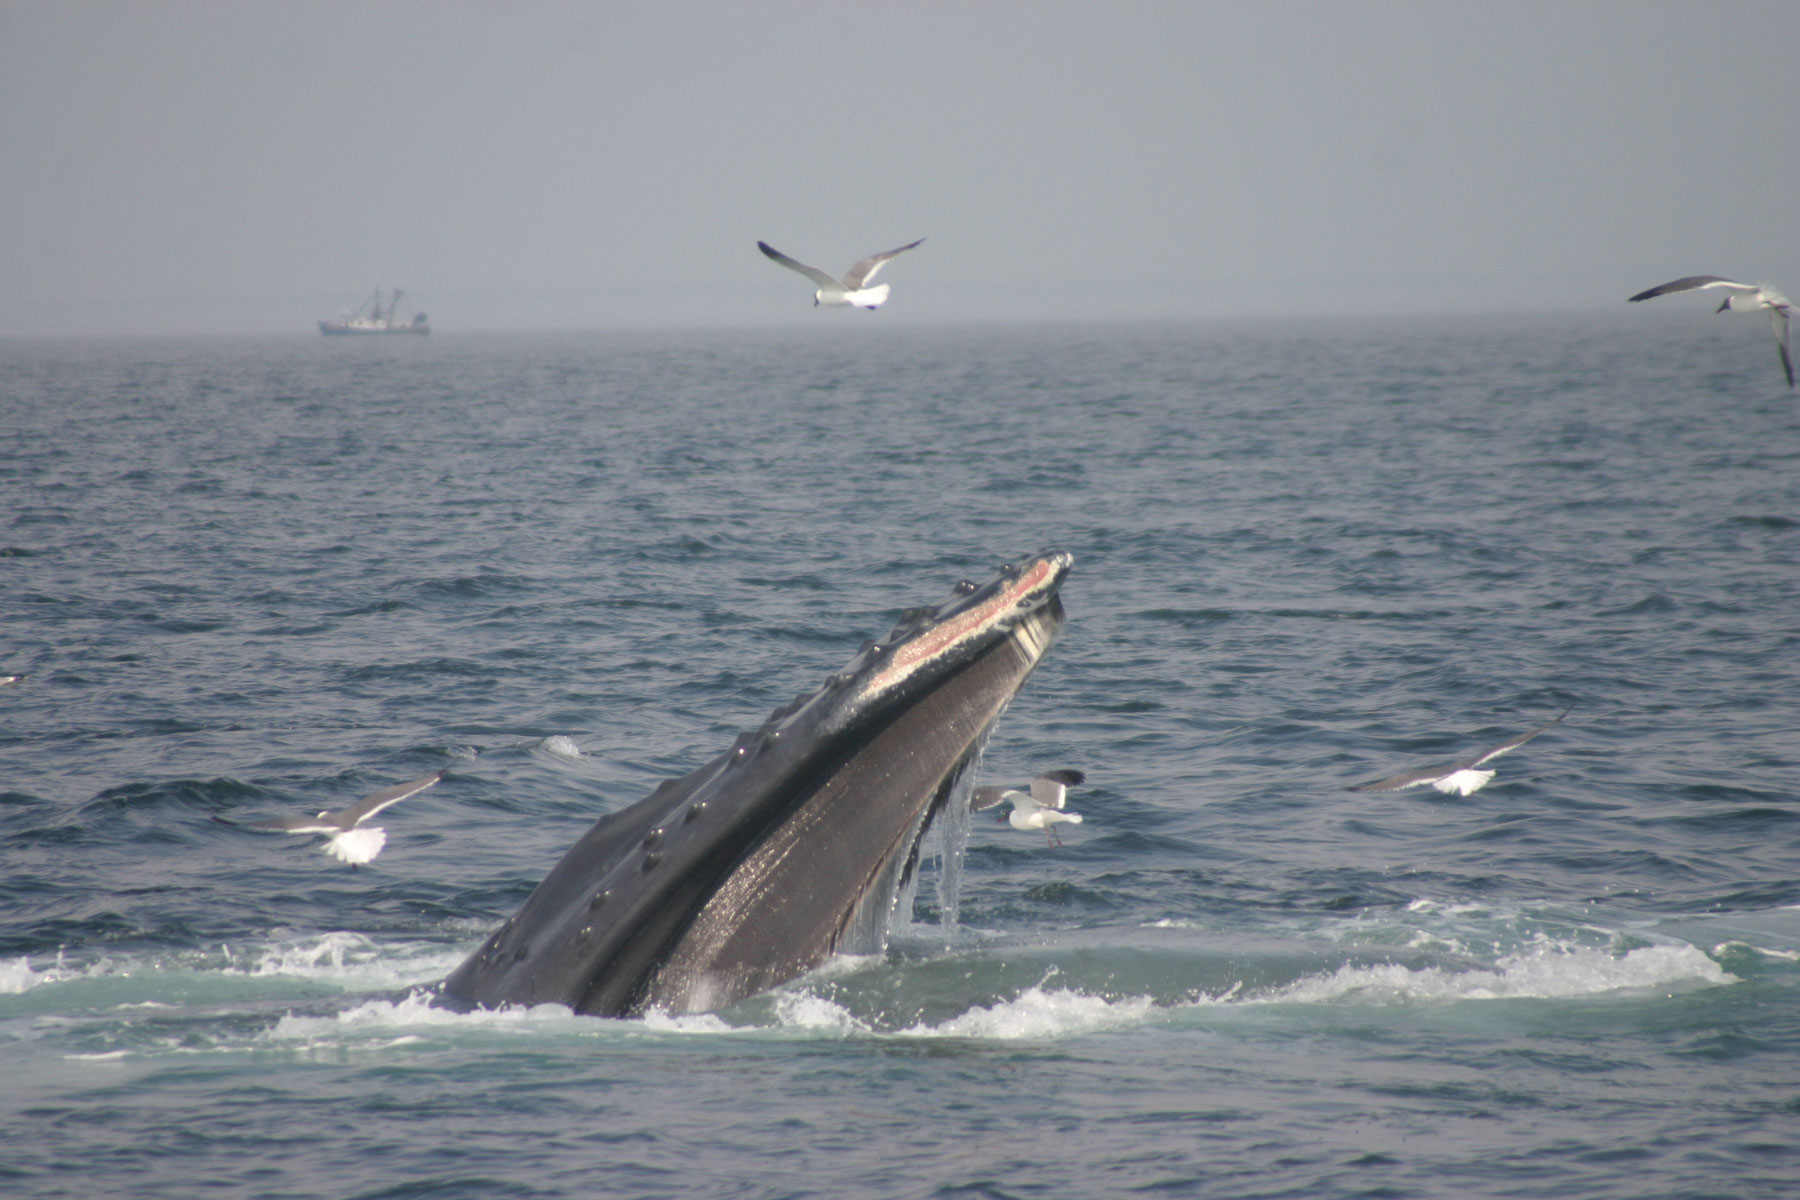 humpback whale research paper Song hybridization events during revolutionary song change provide insights into cultural transmission future research conclusions humpback whales provide a.